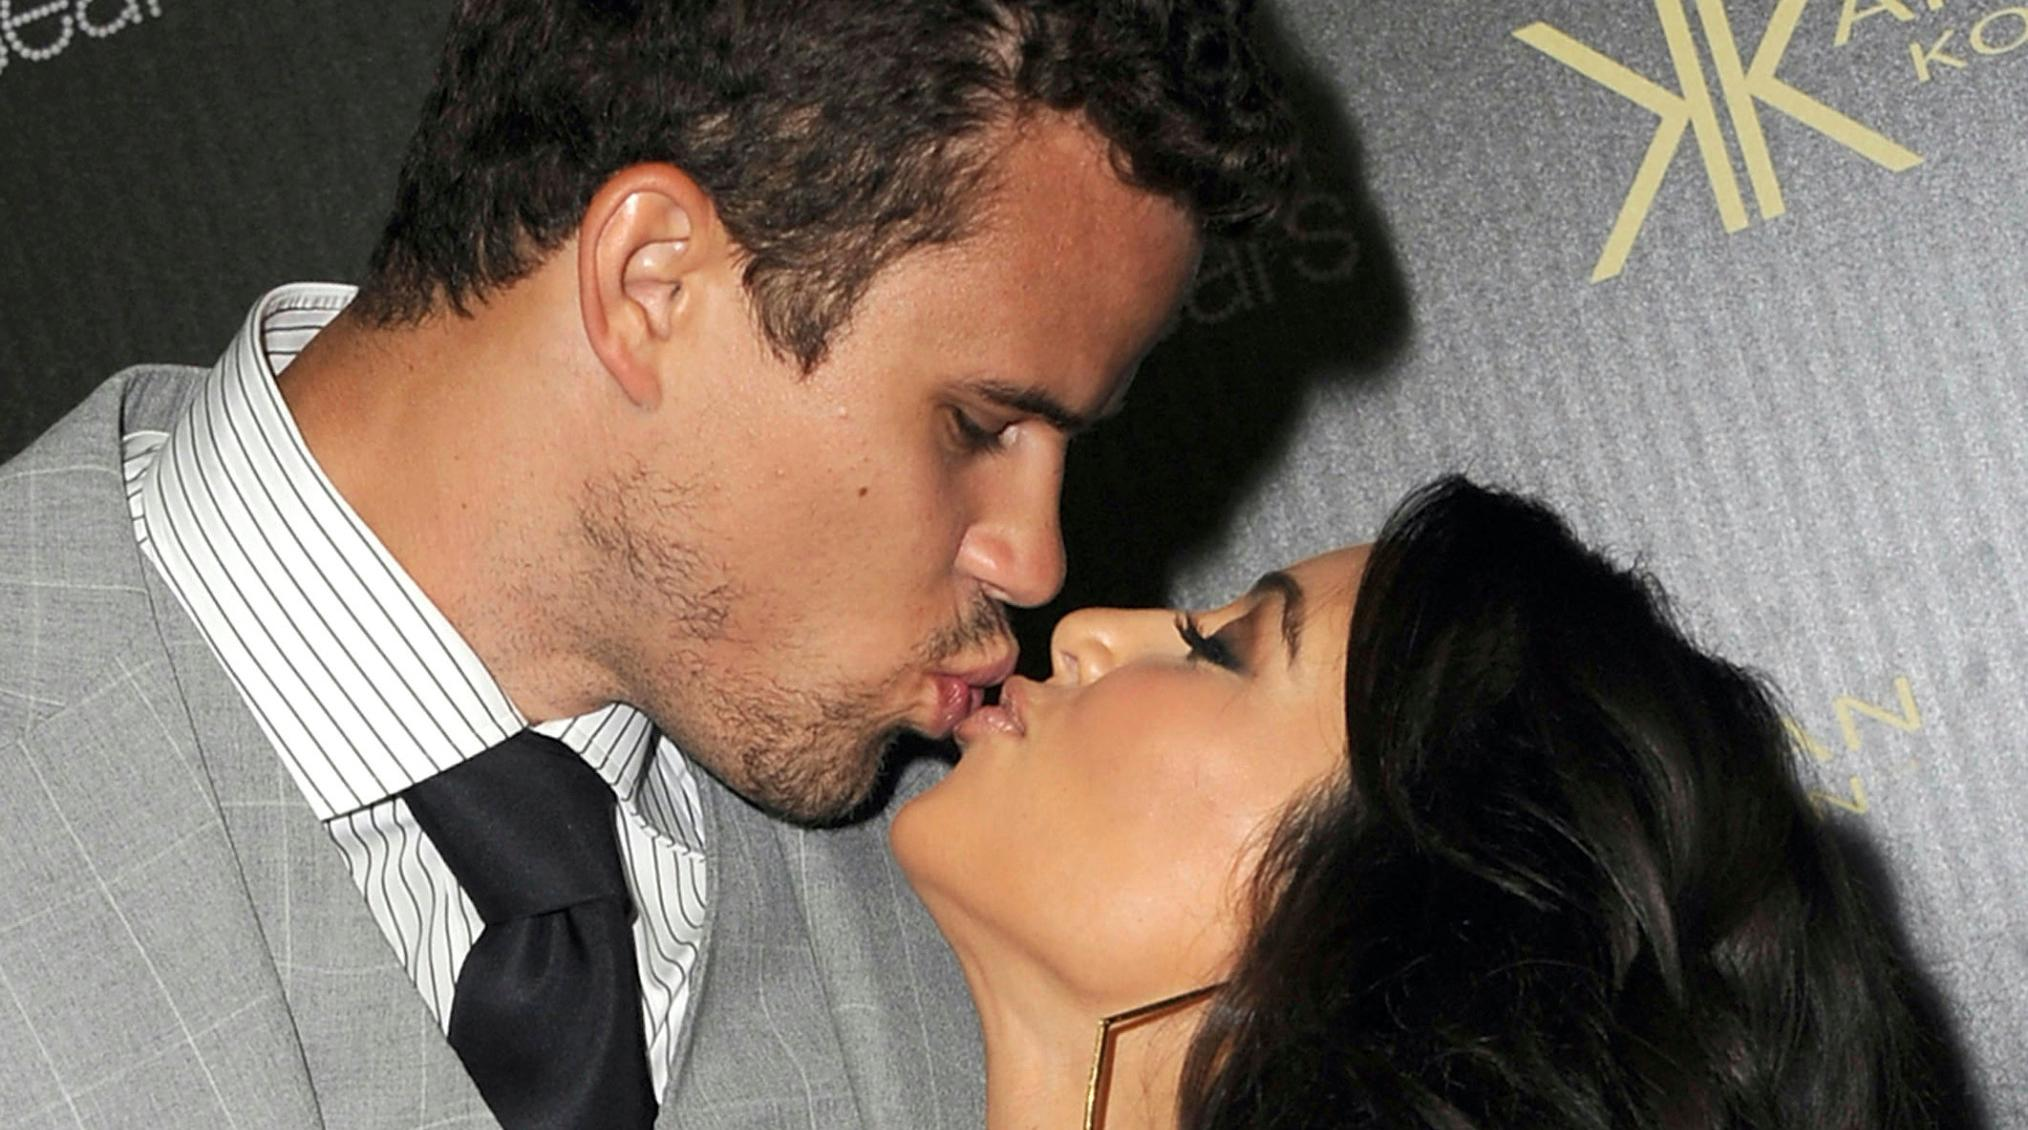 Kris Humphriess Girlfriend: Athlete Has Moved on From Kim